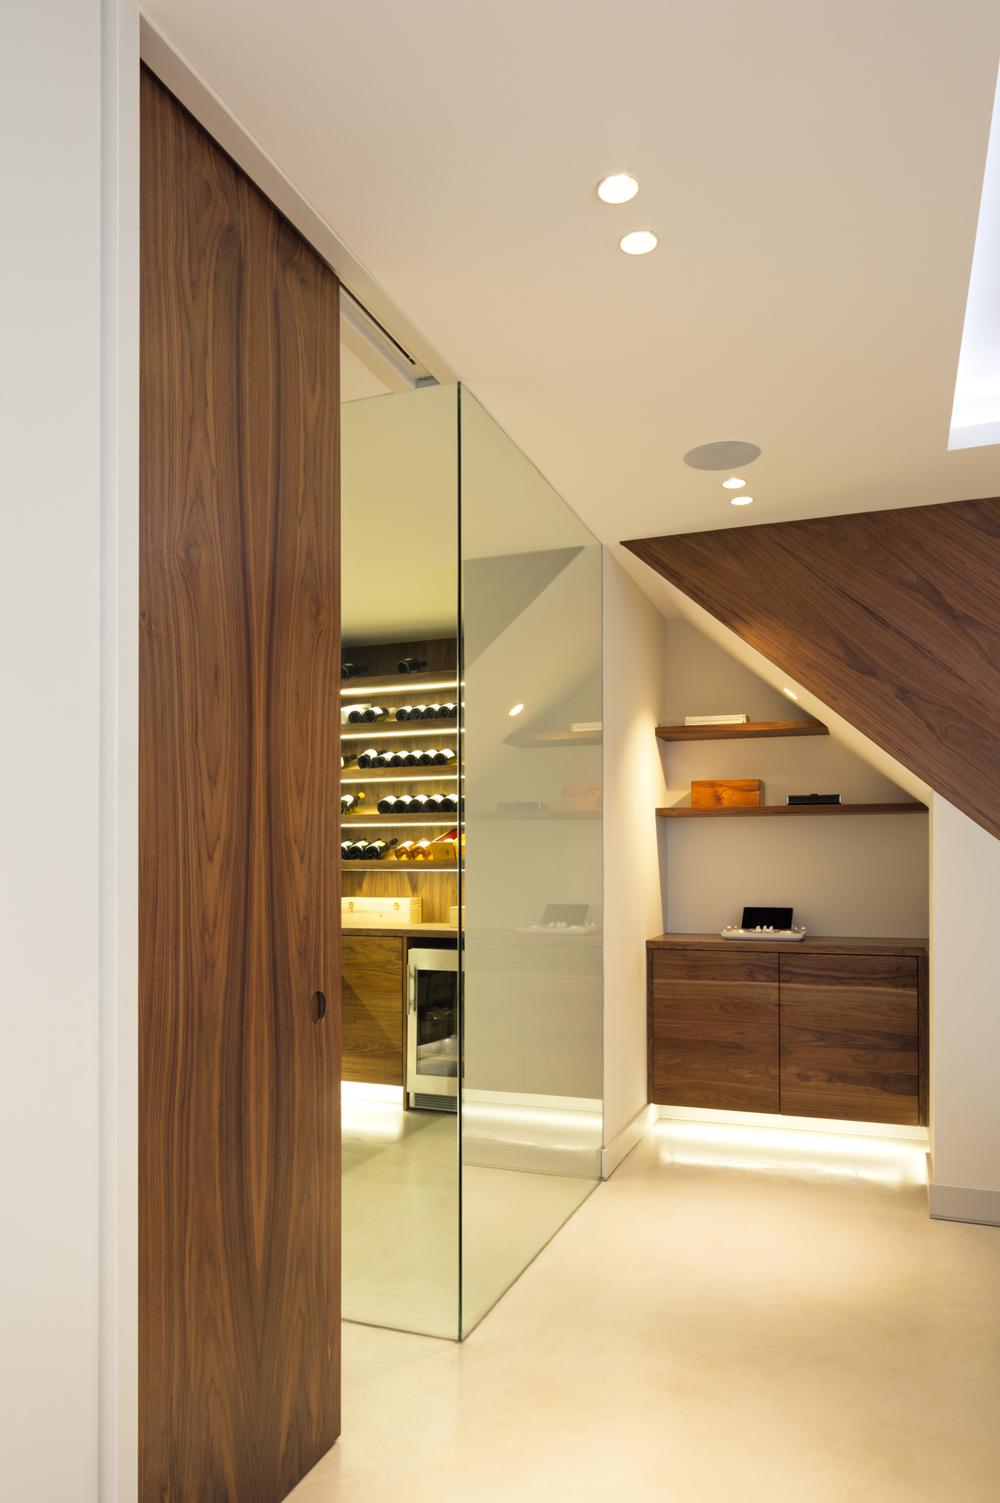 Under stair storage, staircase, wine store and sliding door - Photography - Jocelyn Low